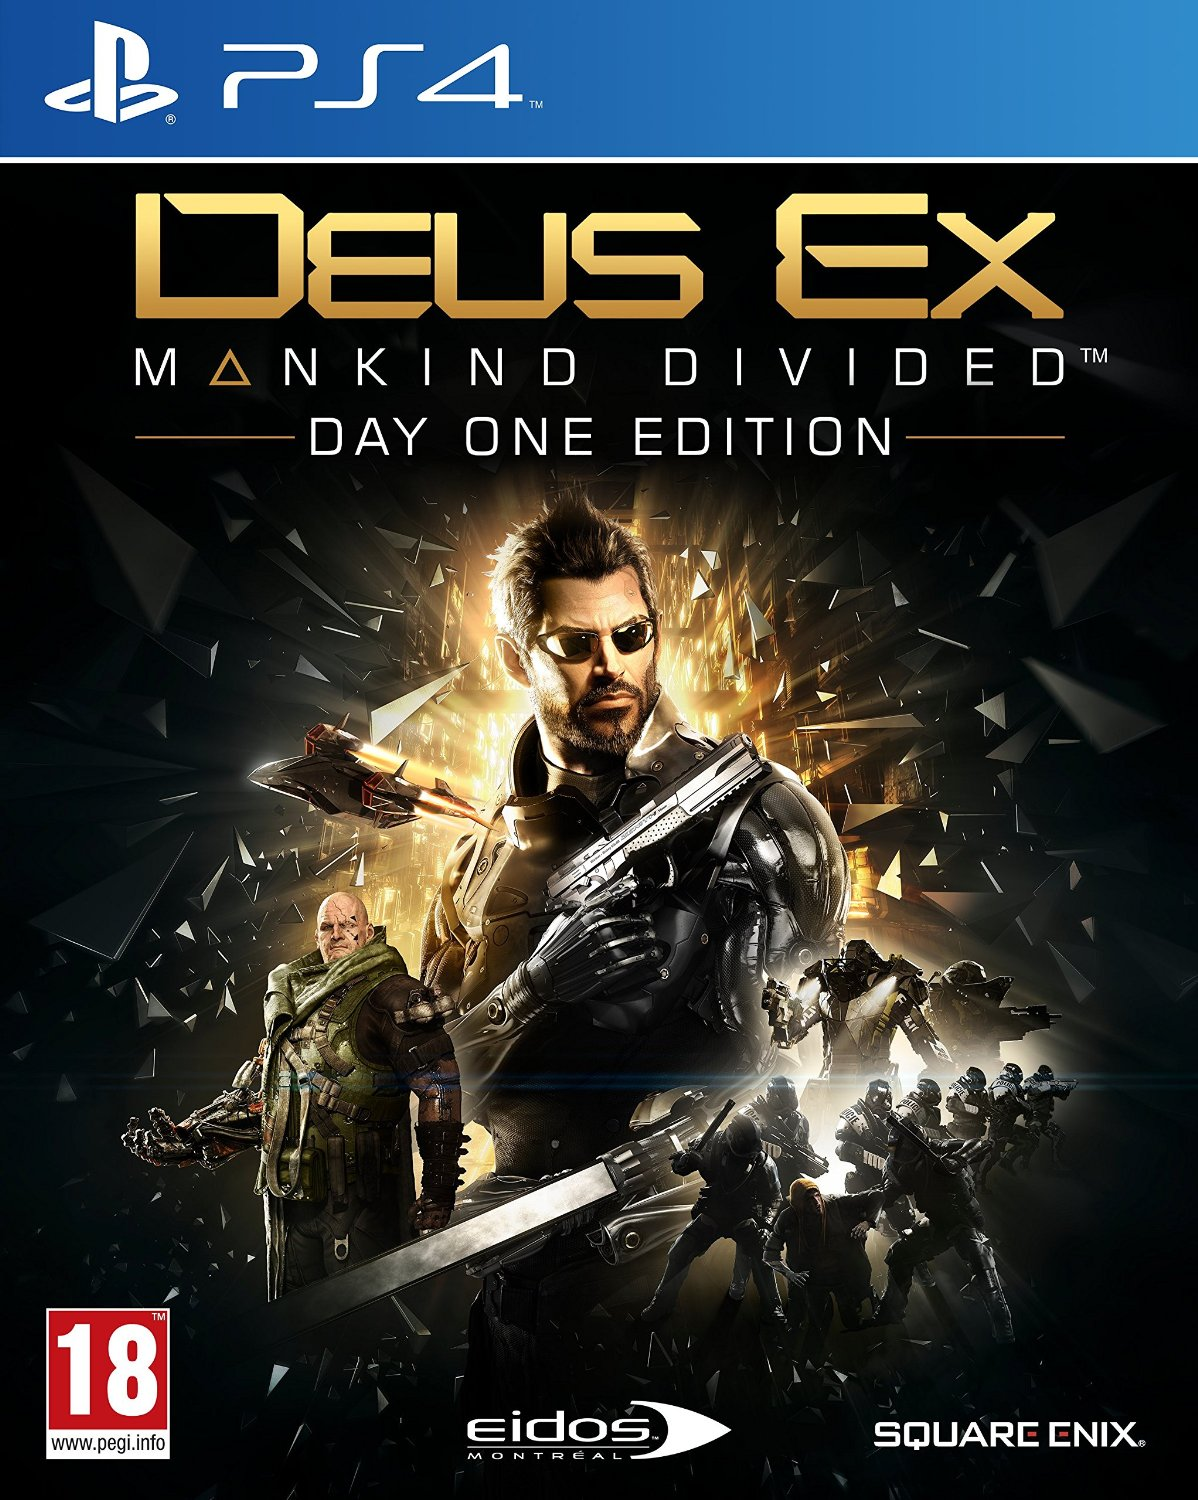 Deus Ex: Mankind Divided-PlayStation 4 By:Eidos Montreal Eur:30,88 Ден1:3999